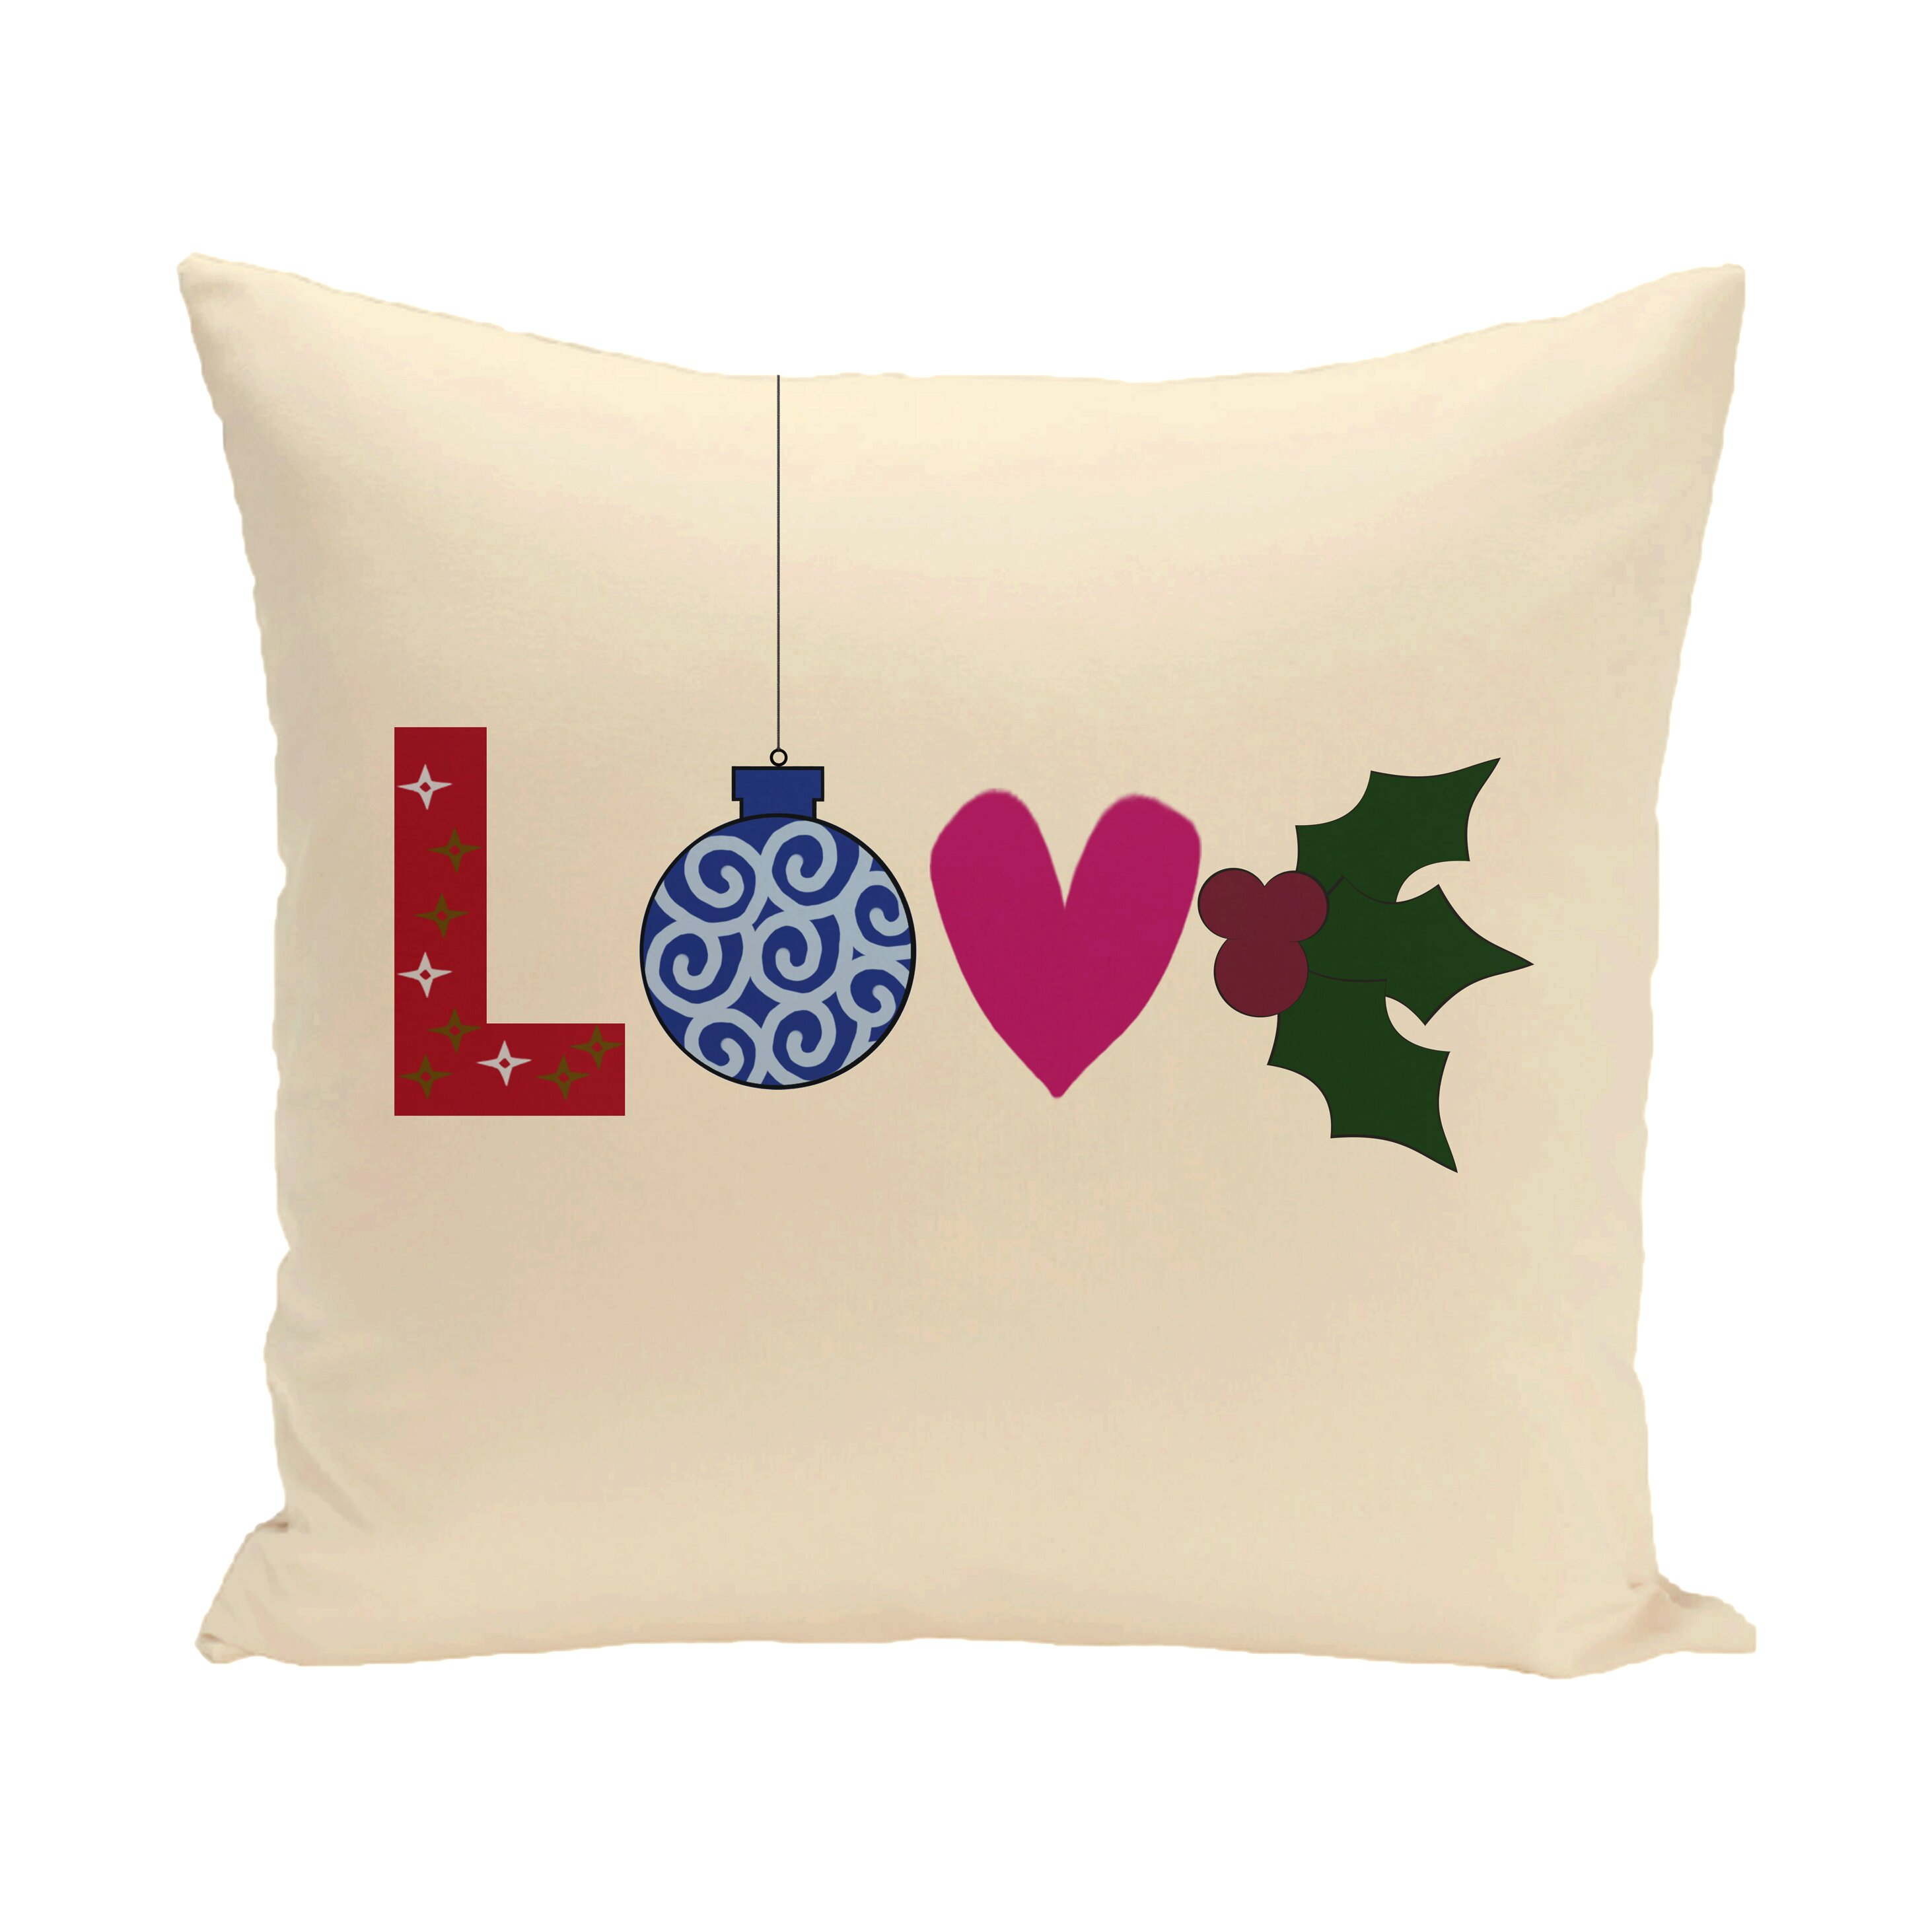 Decorative Throw Pillows With Words : The Holiday Aisle Love Decorative Holiday Word Print Polyester Throw Pillow & Reviews Wayfair